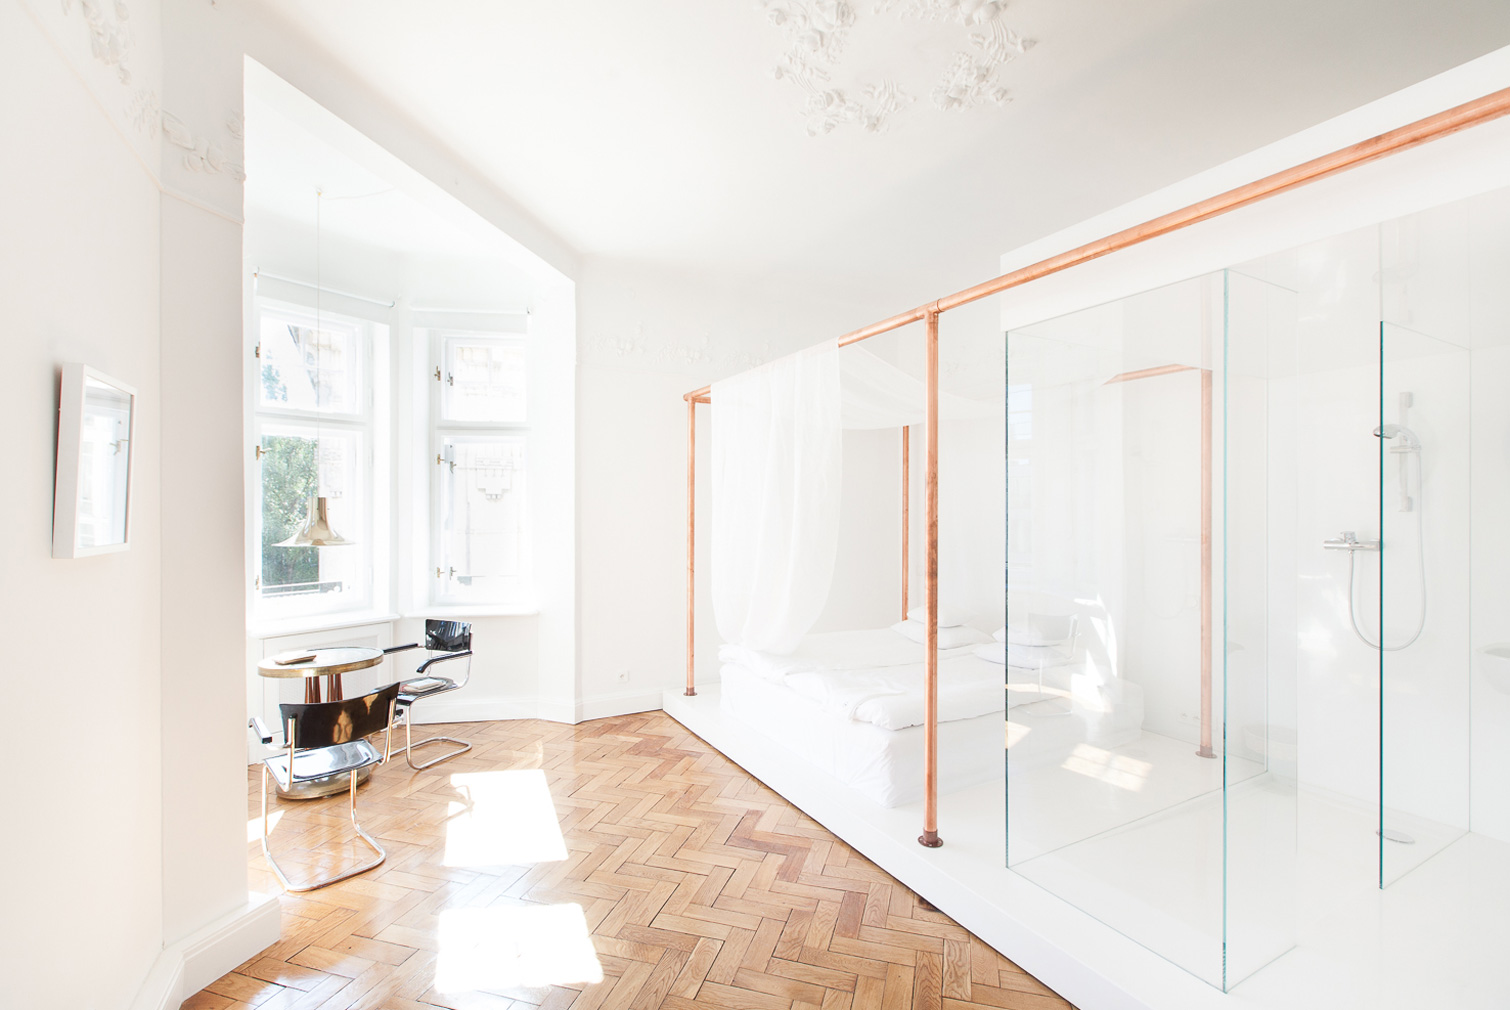 White bedroom suite with copper detailing and glass bathroom